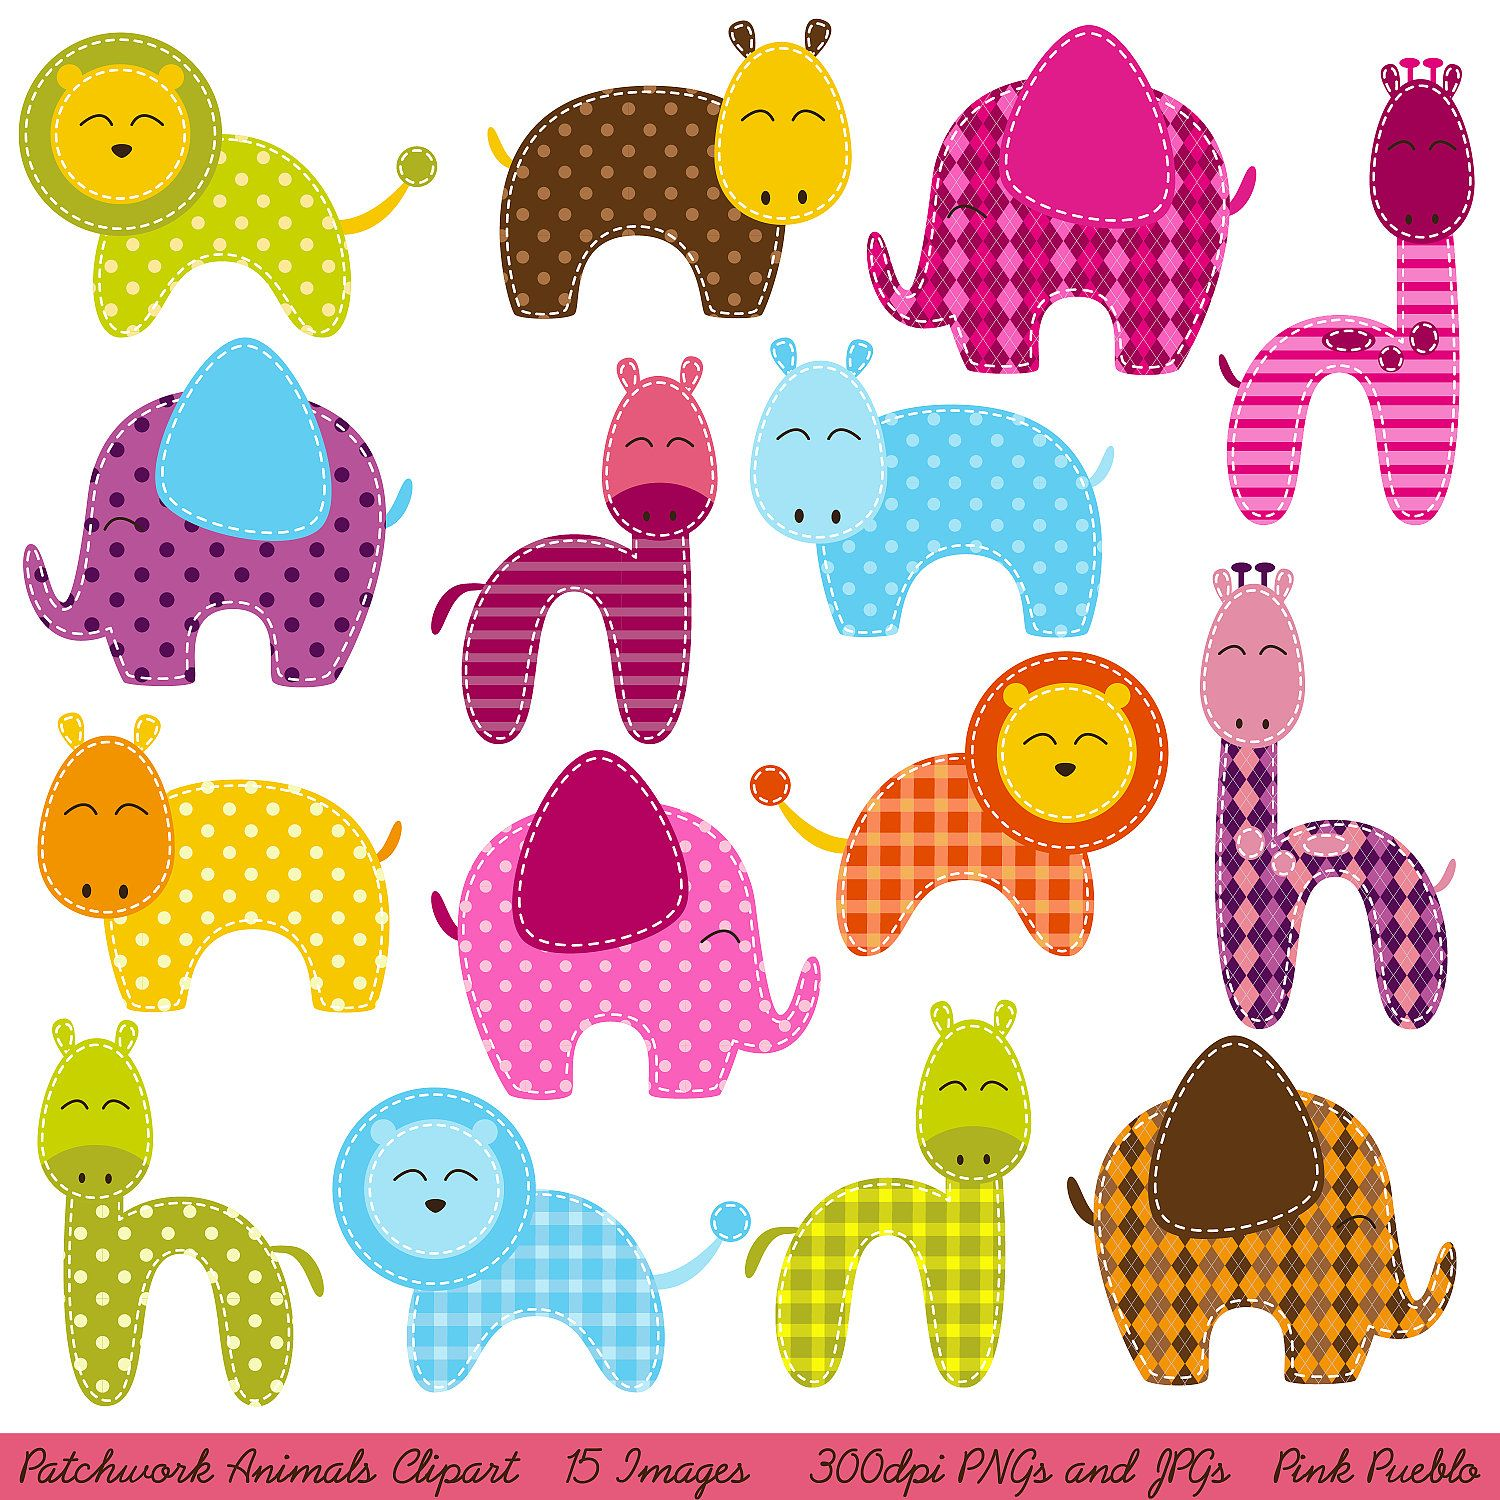 Patchwork Animals Clipart Clip Art Zoo Animals Jungle Animals Clipart Clip Art